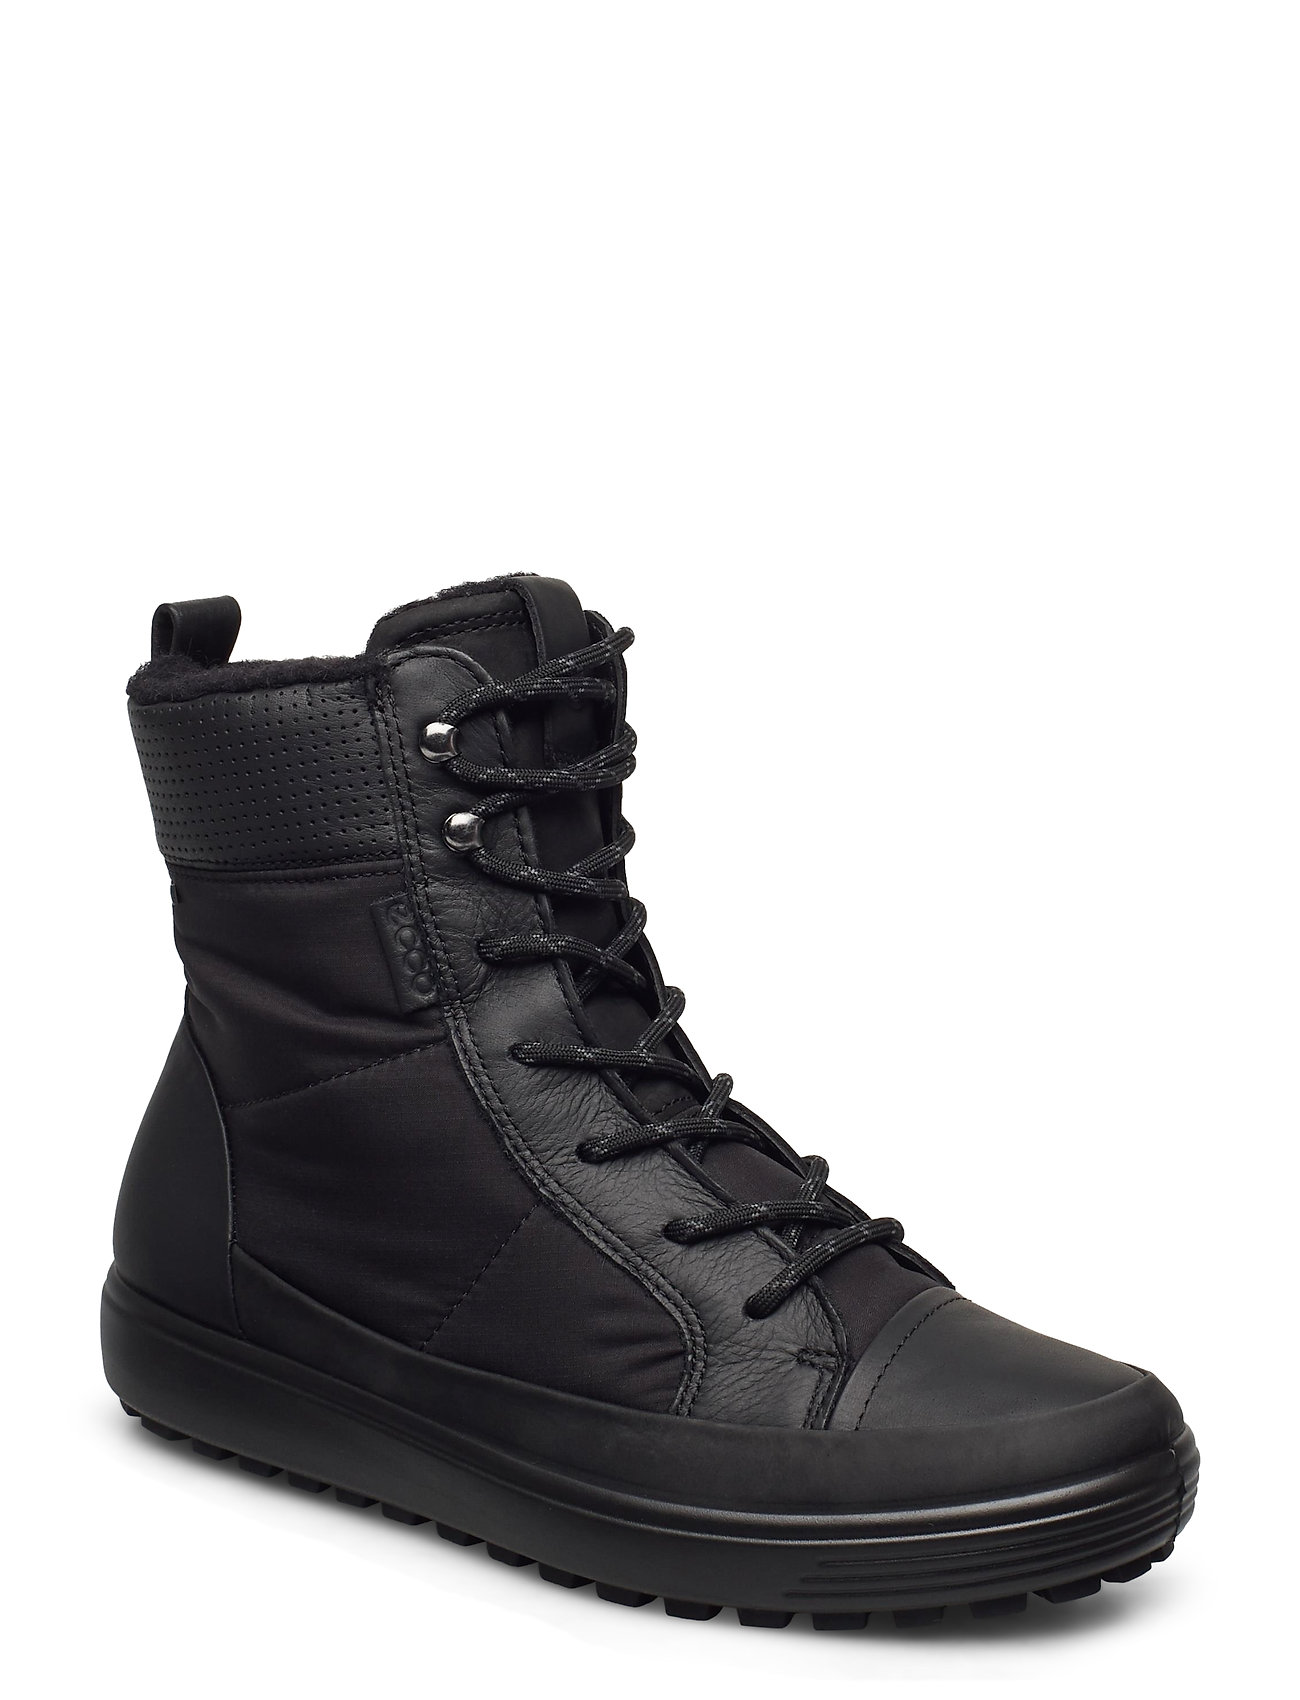 Image of Soft 7 Tred W Shoes Boots Ankle Boots Ankle Boot - Flat Sort ECCO (3442838563)